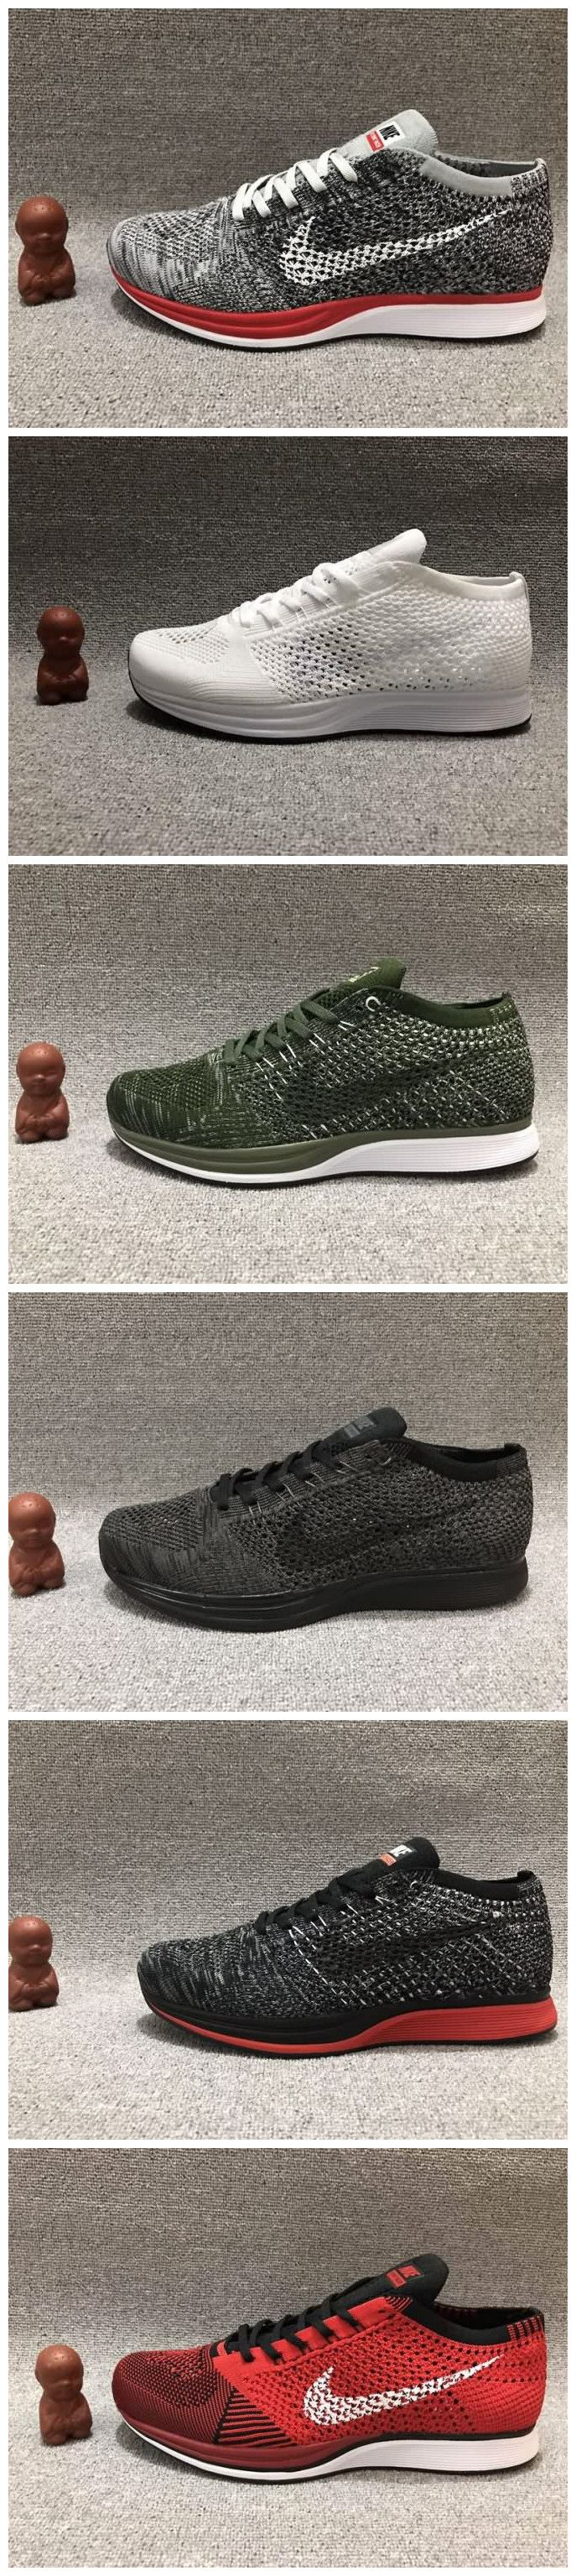 Cheap Nike Flyknit Racer 2017 Unisex shoes Grey Red&All White&Army Free Shipping WhatsApp:8613328373859